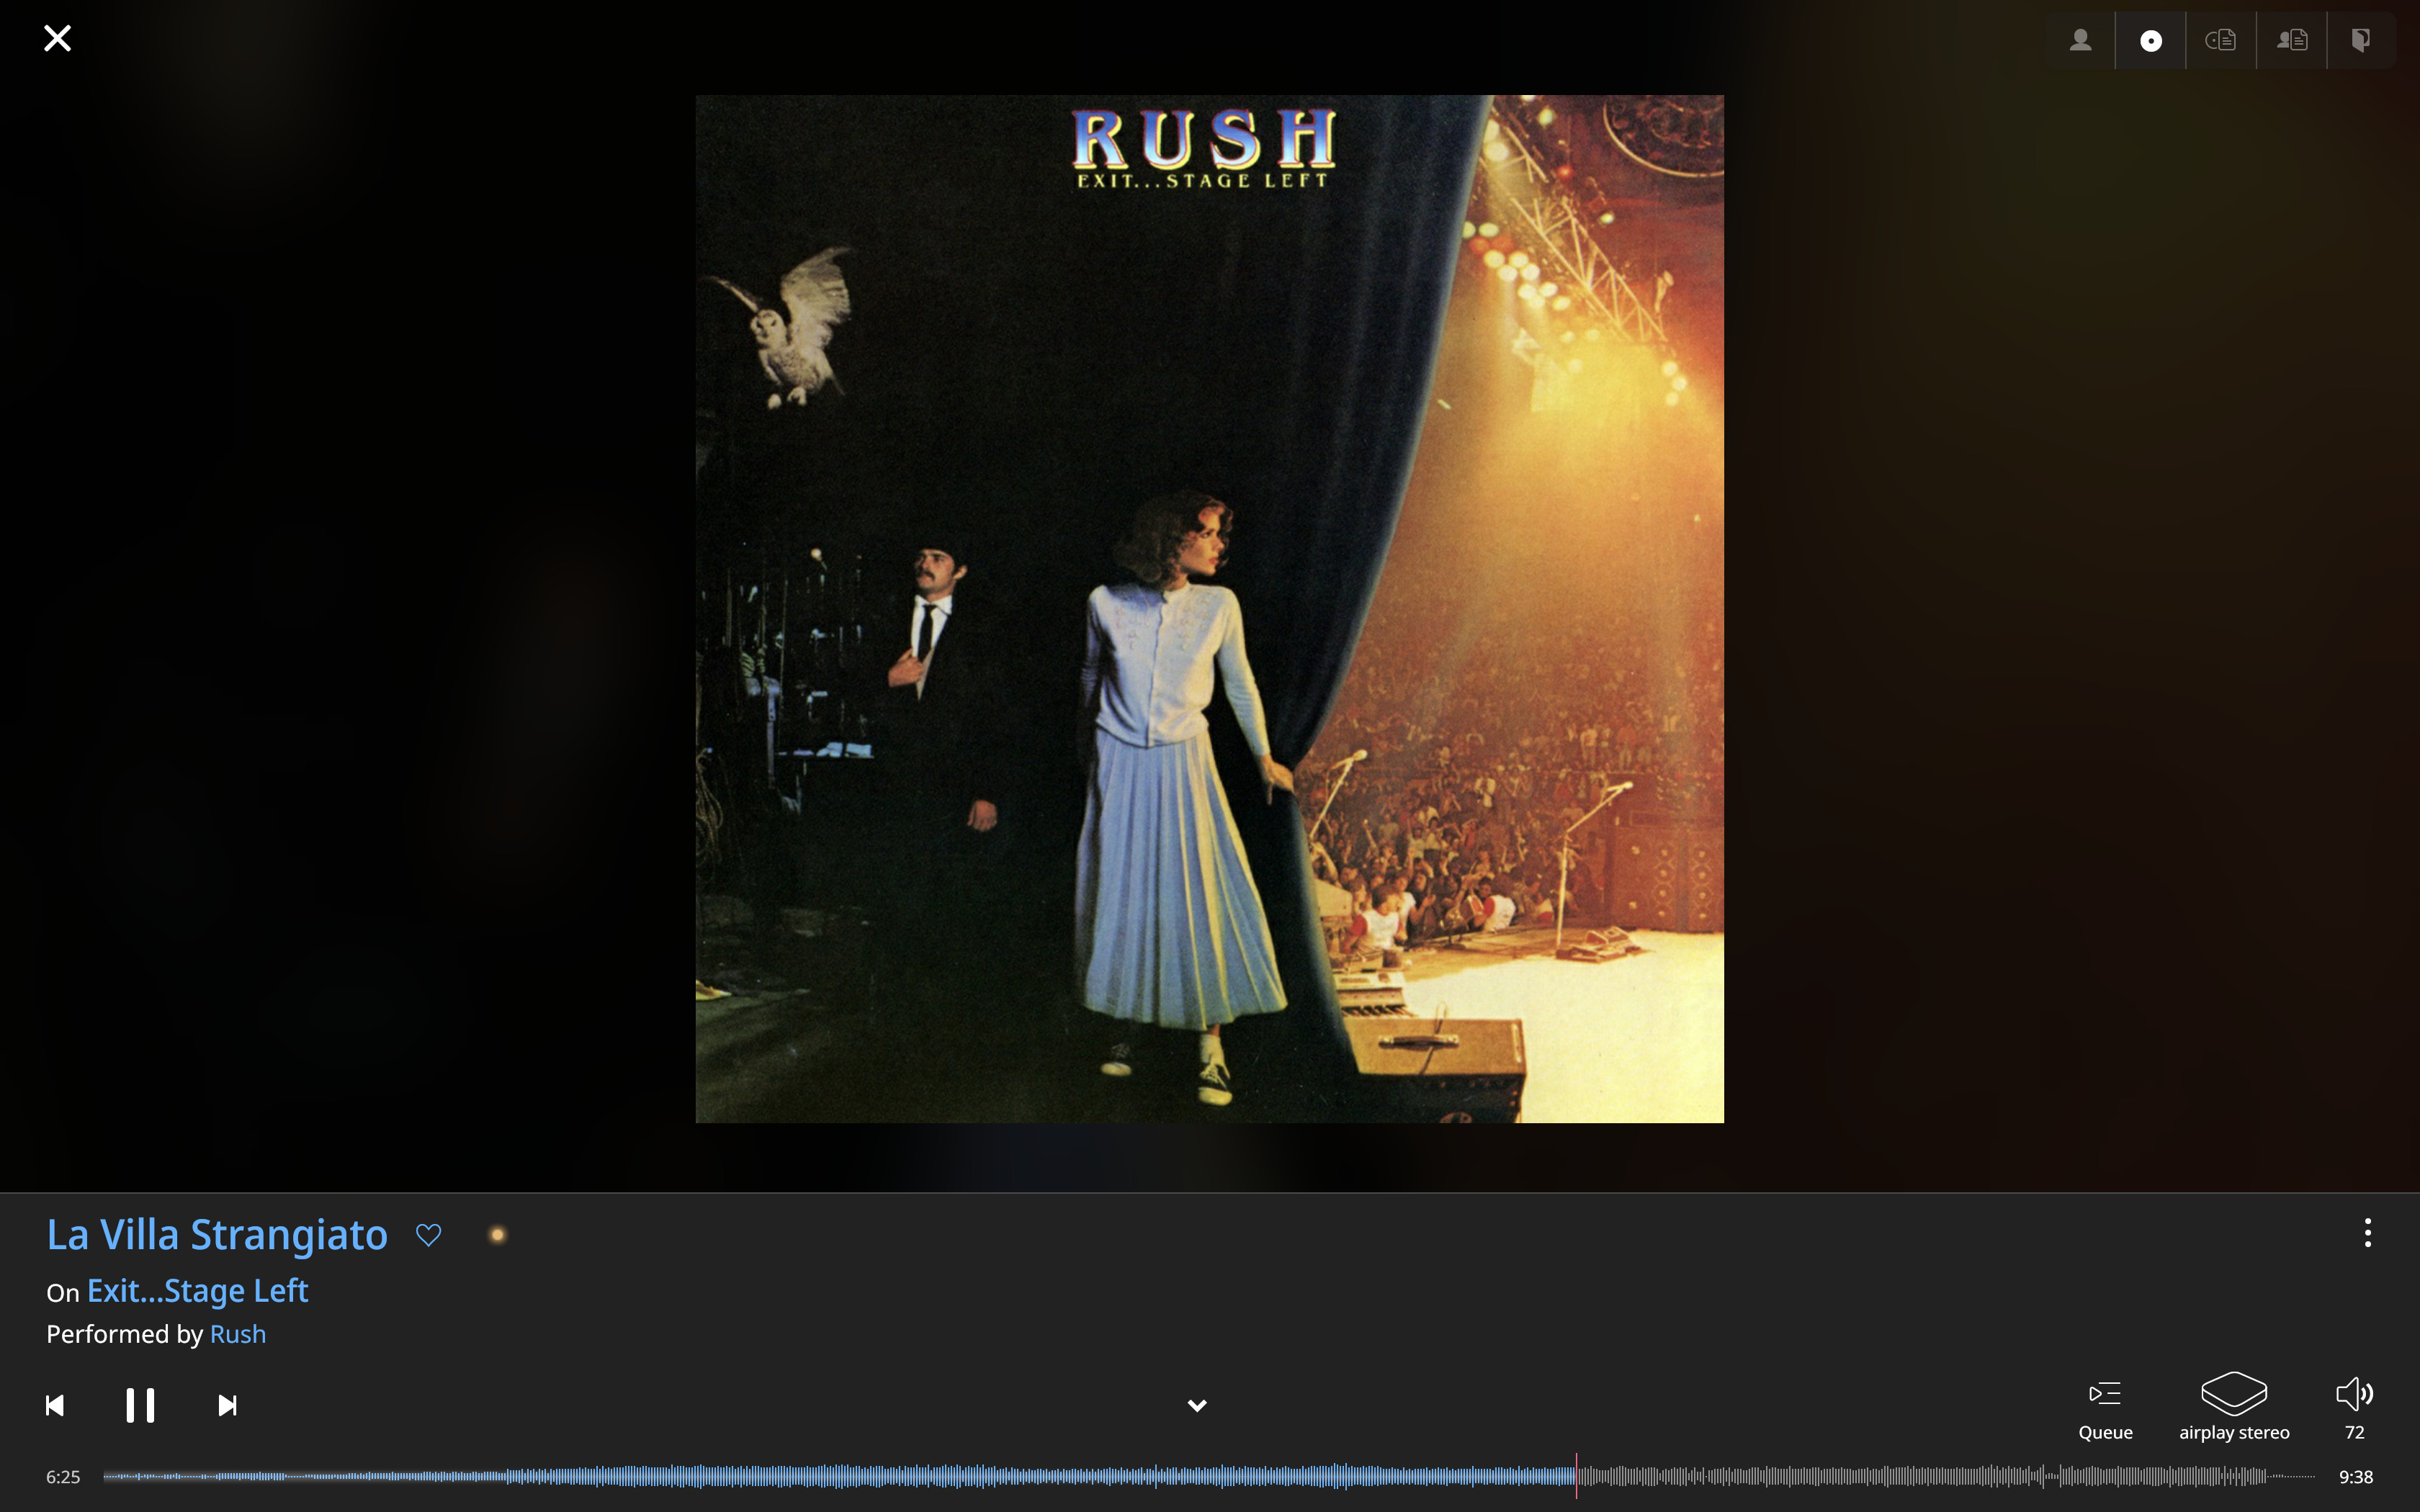 Image of the Roon application showing the cover of Rush's Exit... Stage Left